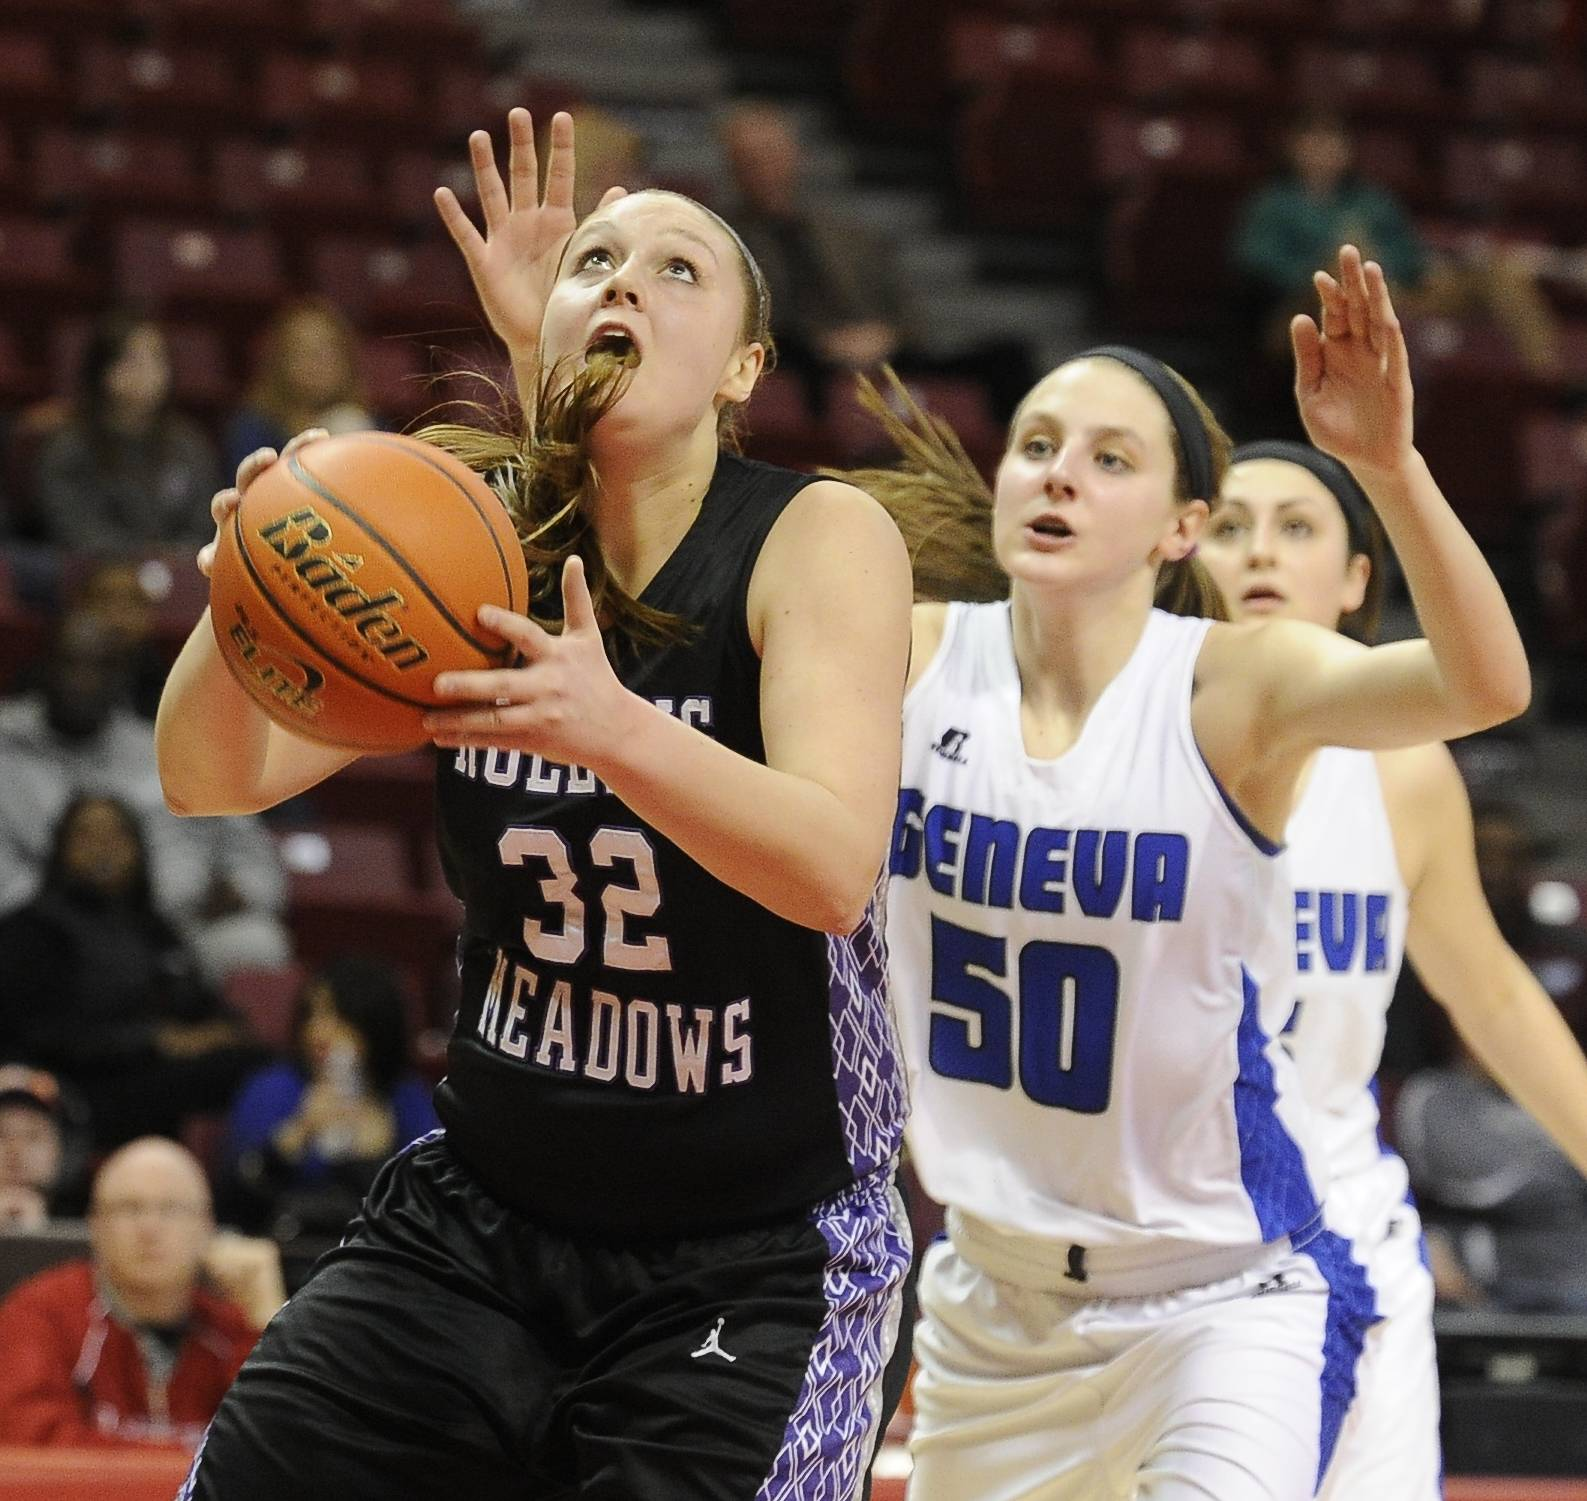 Images from the Geneva vs. Rolling Meadows  Class 4A state semifinal girls basketball game at Redbird Arena in Normal on Friday, March 7, 2014.